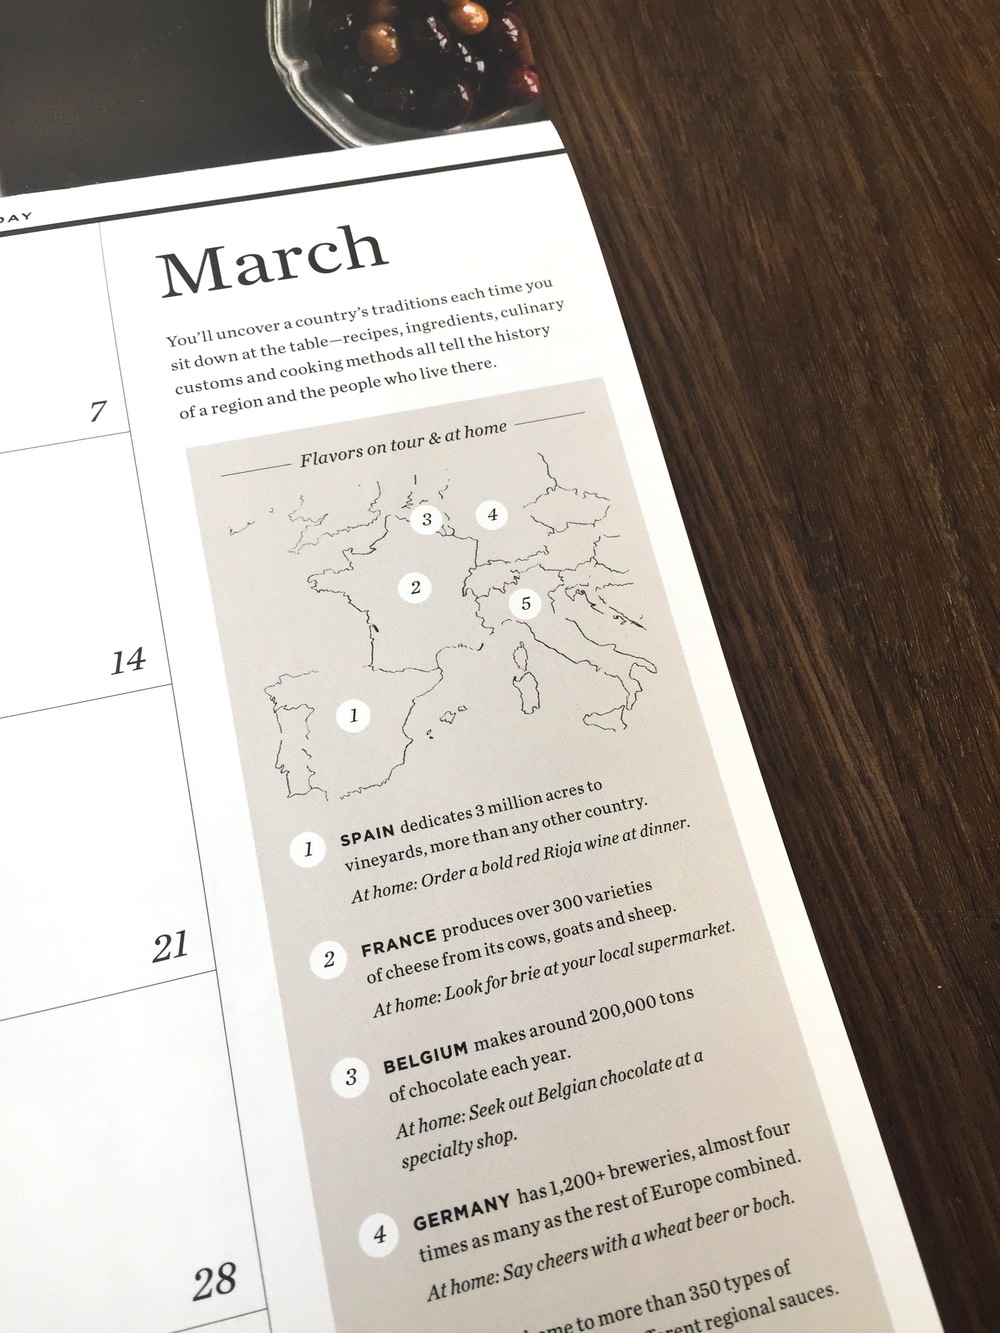 Calendar_March closeup.jpg